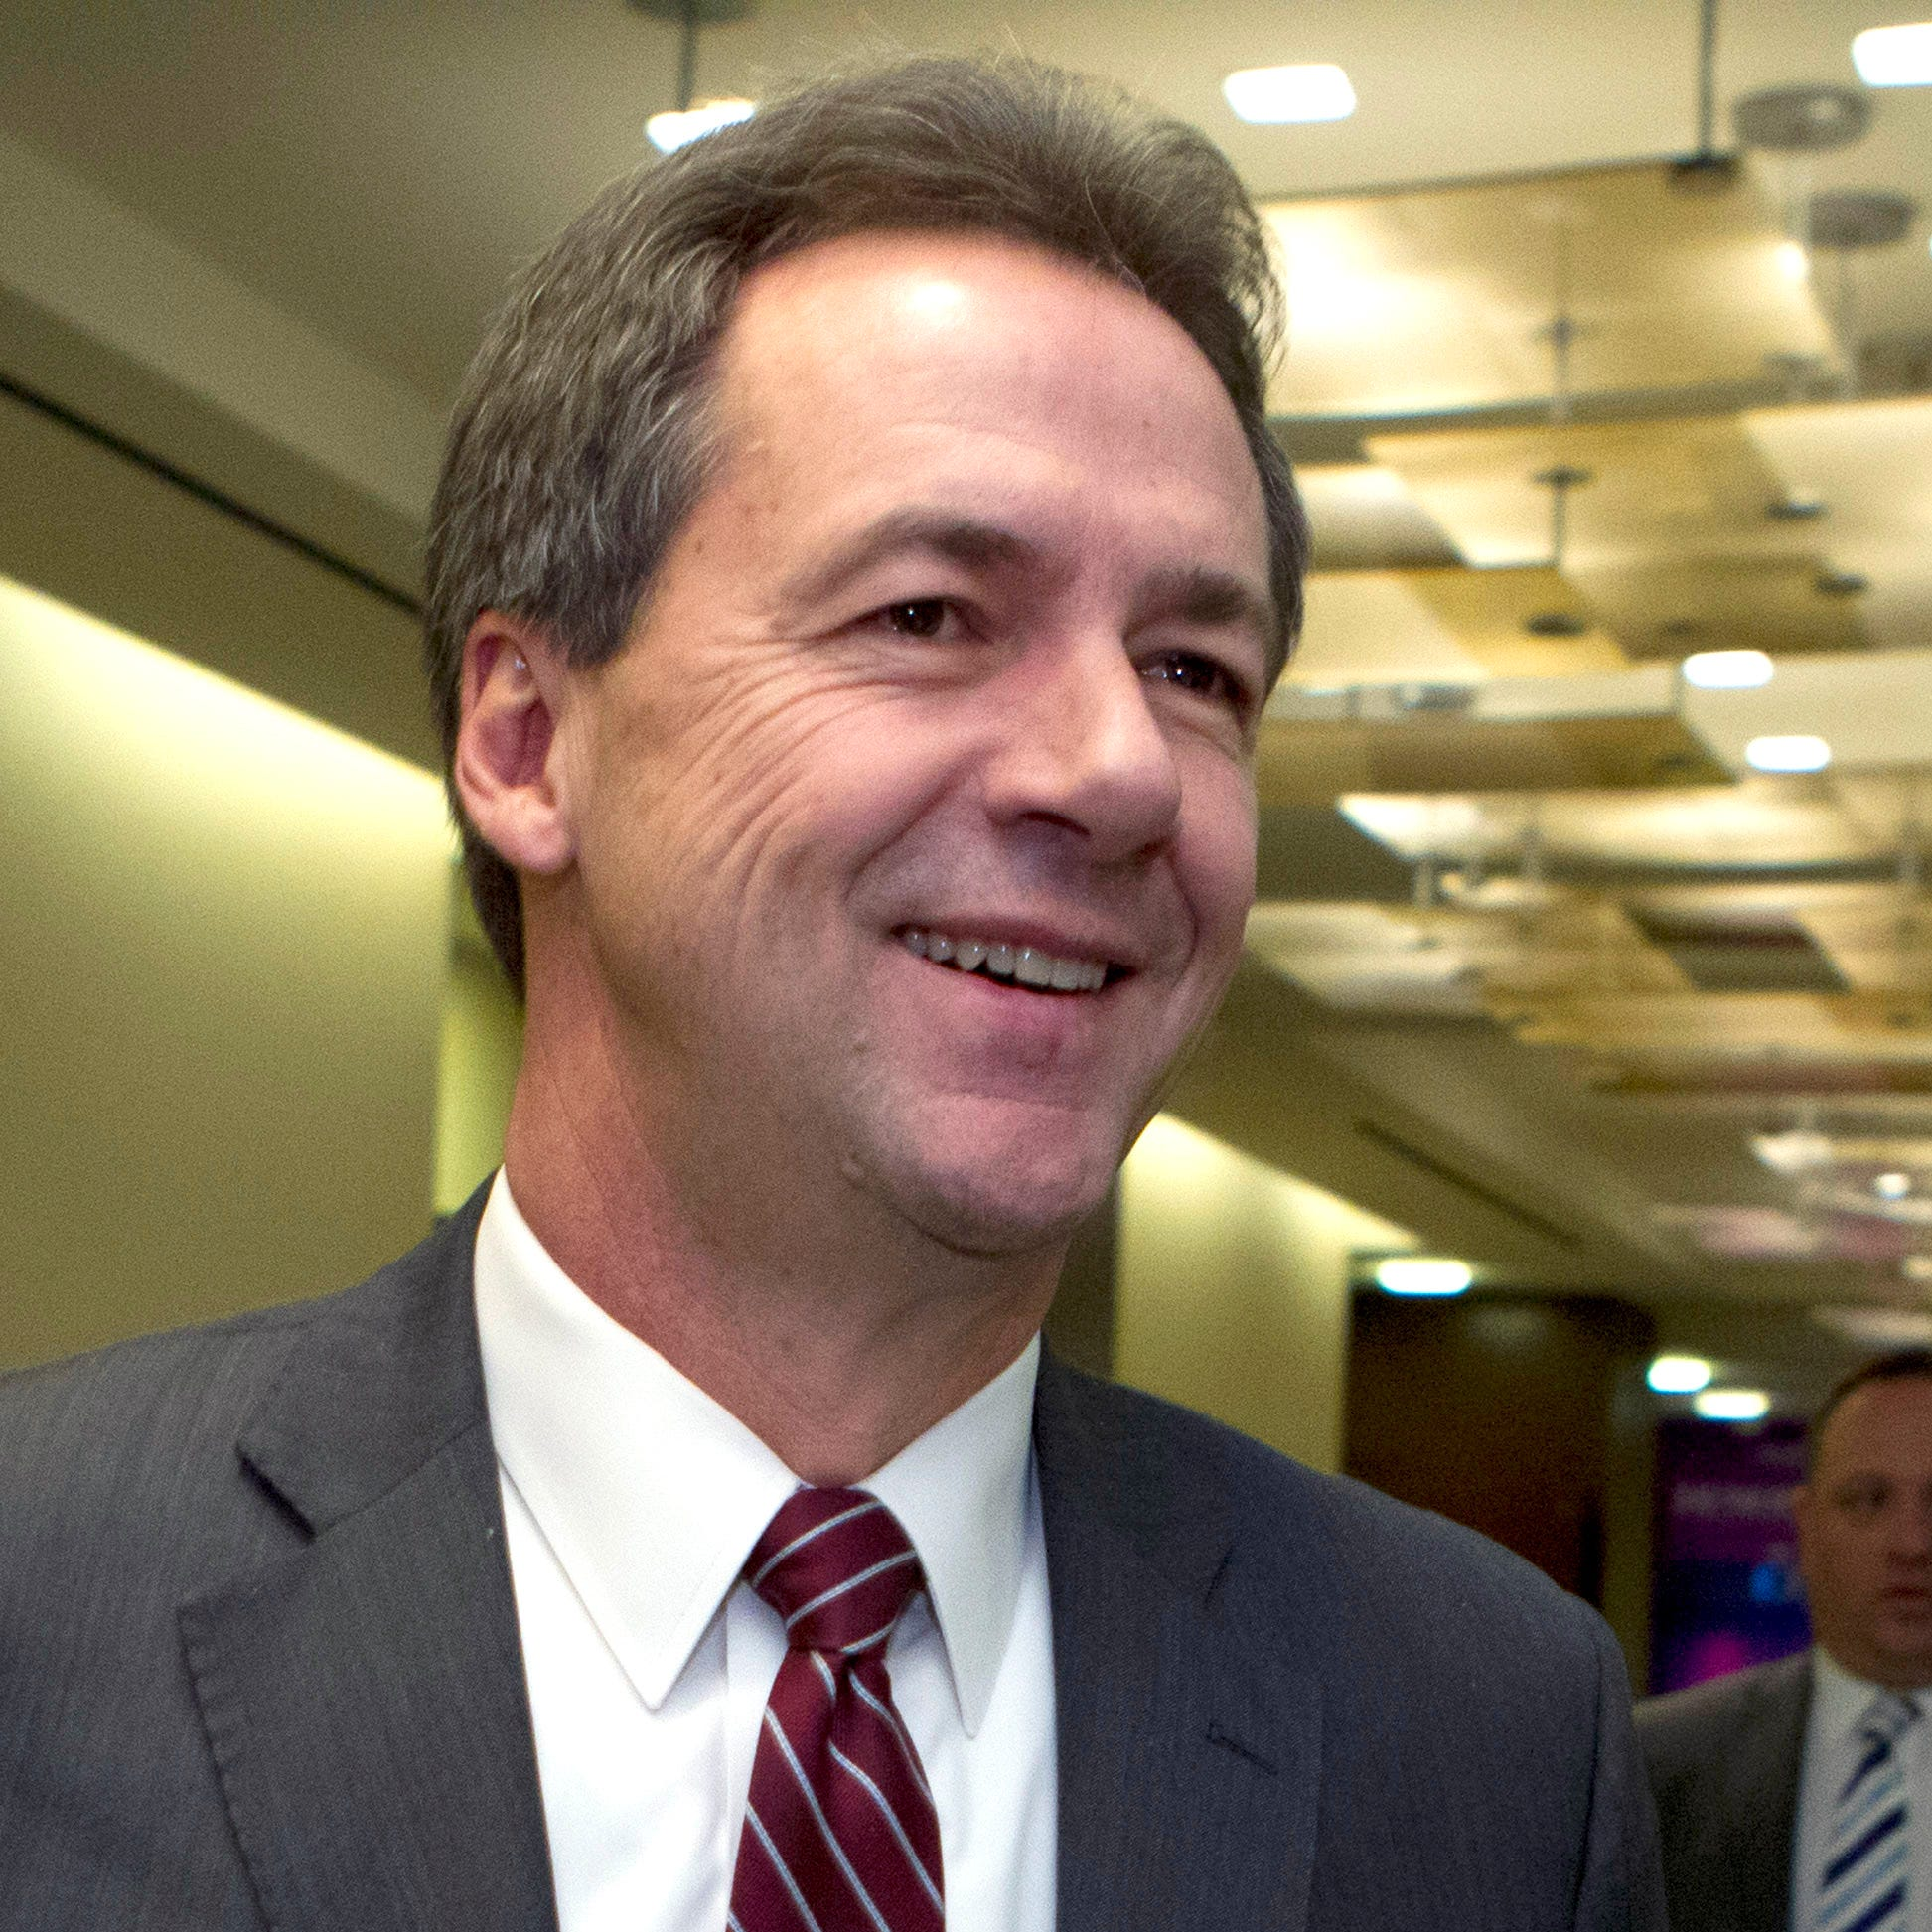 Montana Gov. Steve Bullock joins 2020 Democratic presidential race